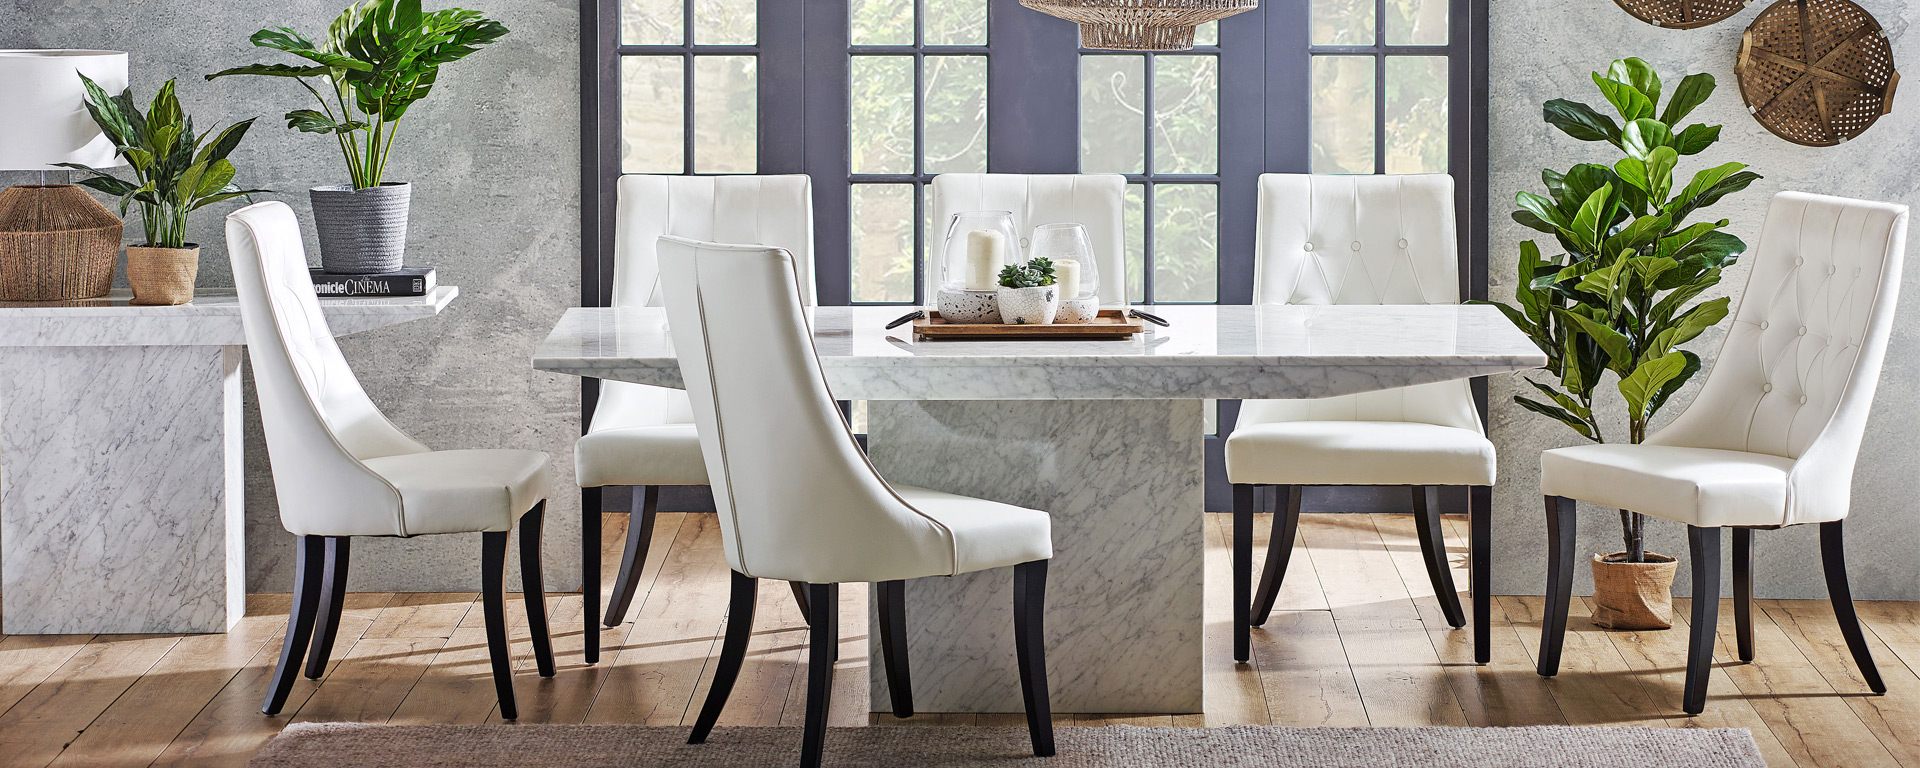 Dining Room Goals: 5 Trending Concrete And Stone Dining in Industrial Concrete-Like Buffets (Image 17 of 30)